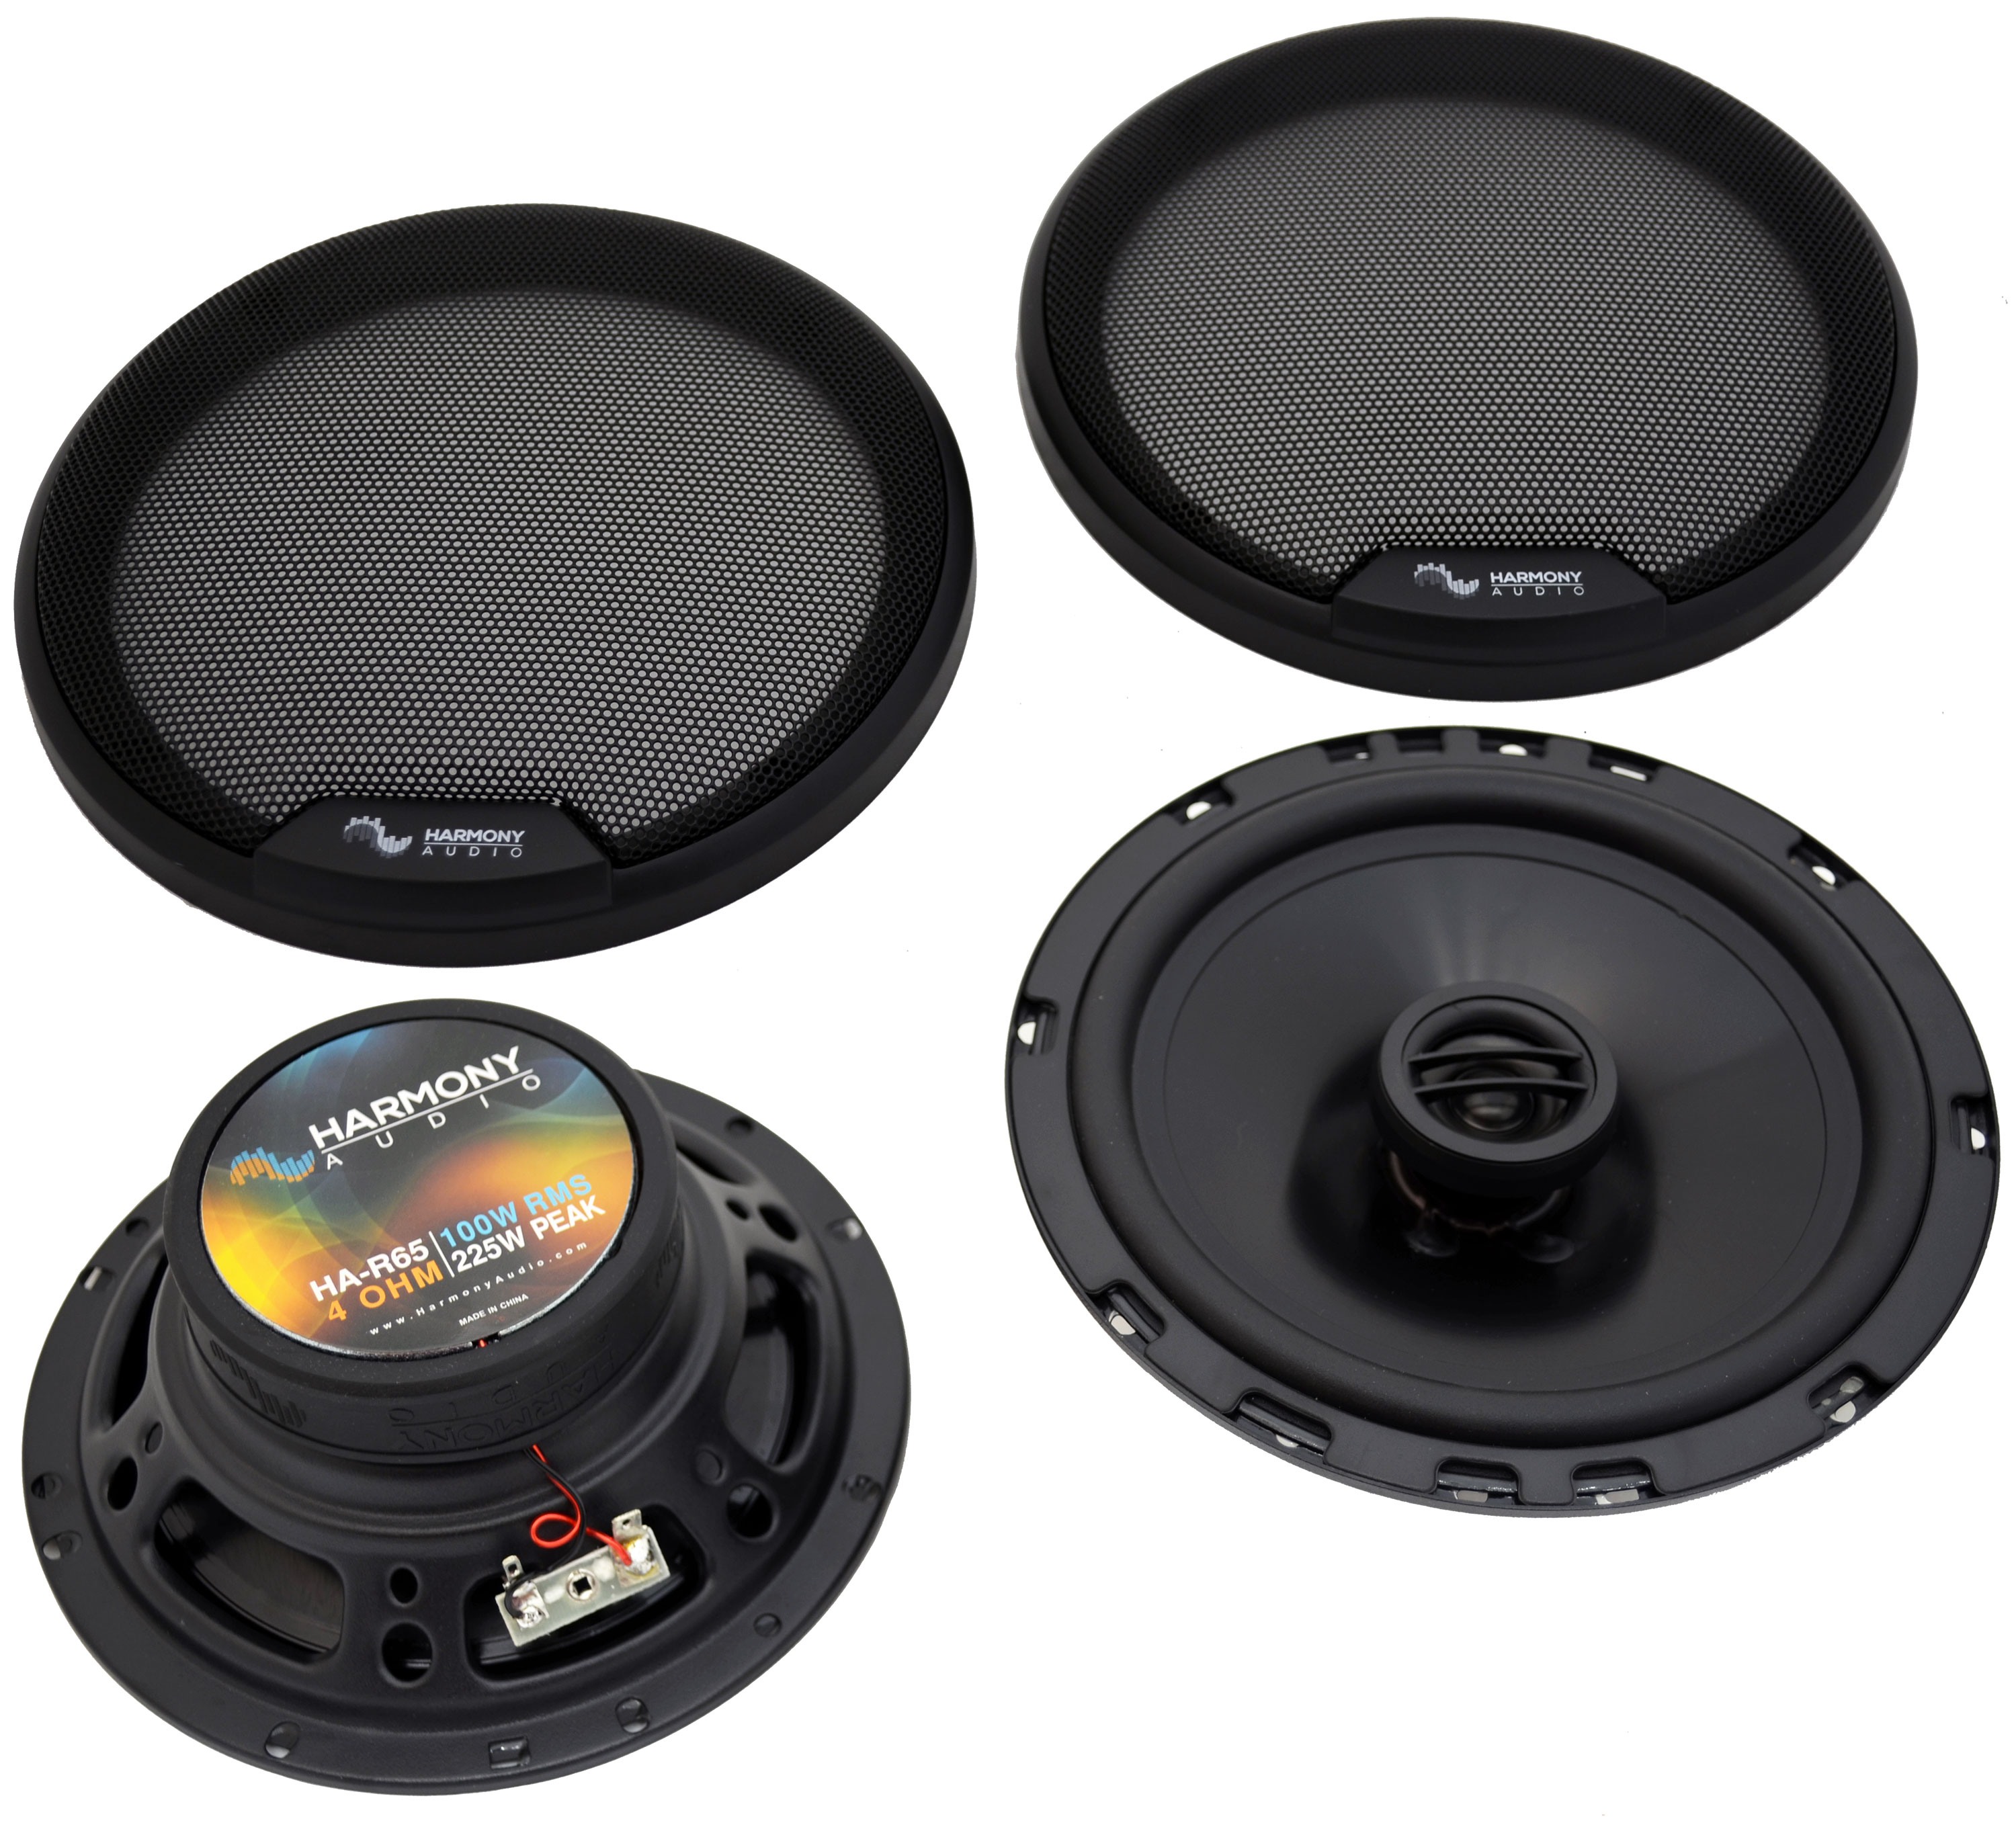 Fits BMW 6 Series 1977-1989 Rear Deck Replacement Harmony HA-R65 Speakers New